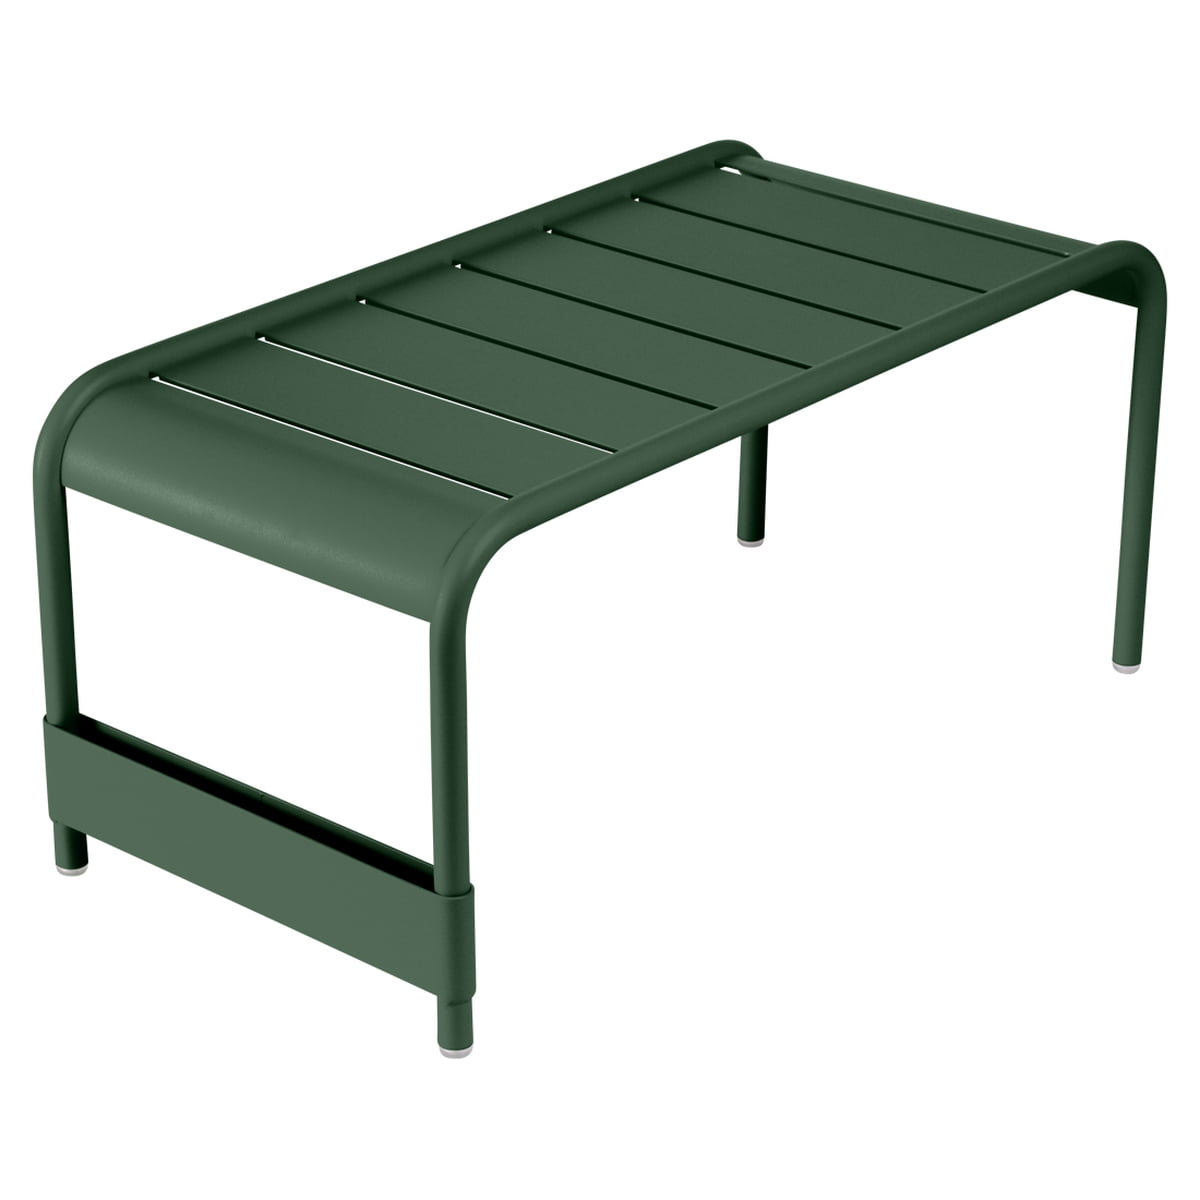 Luxembourg low table garden bench by fermob - Fermob luxembourg table ...